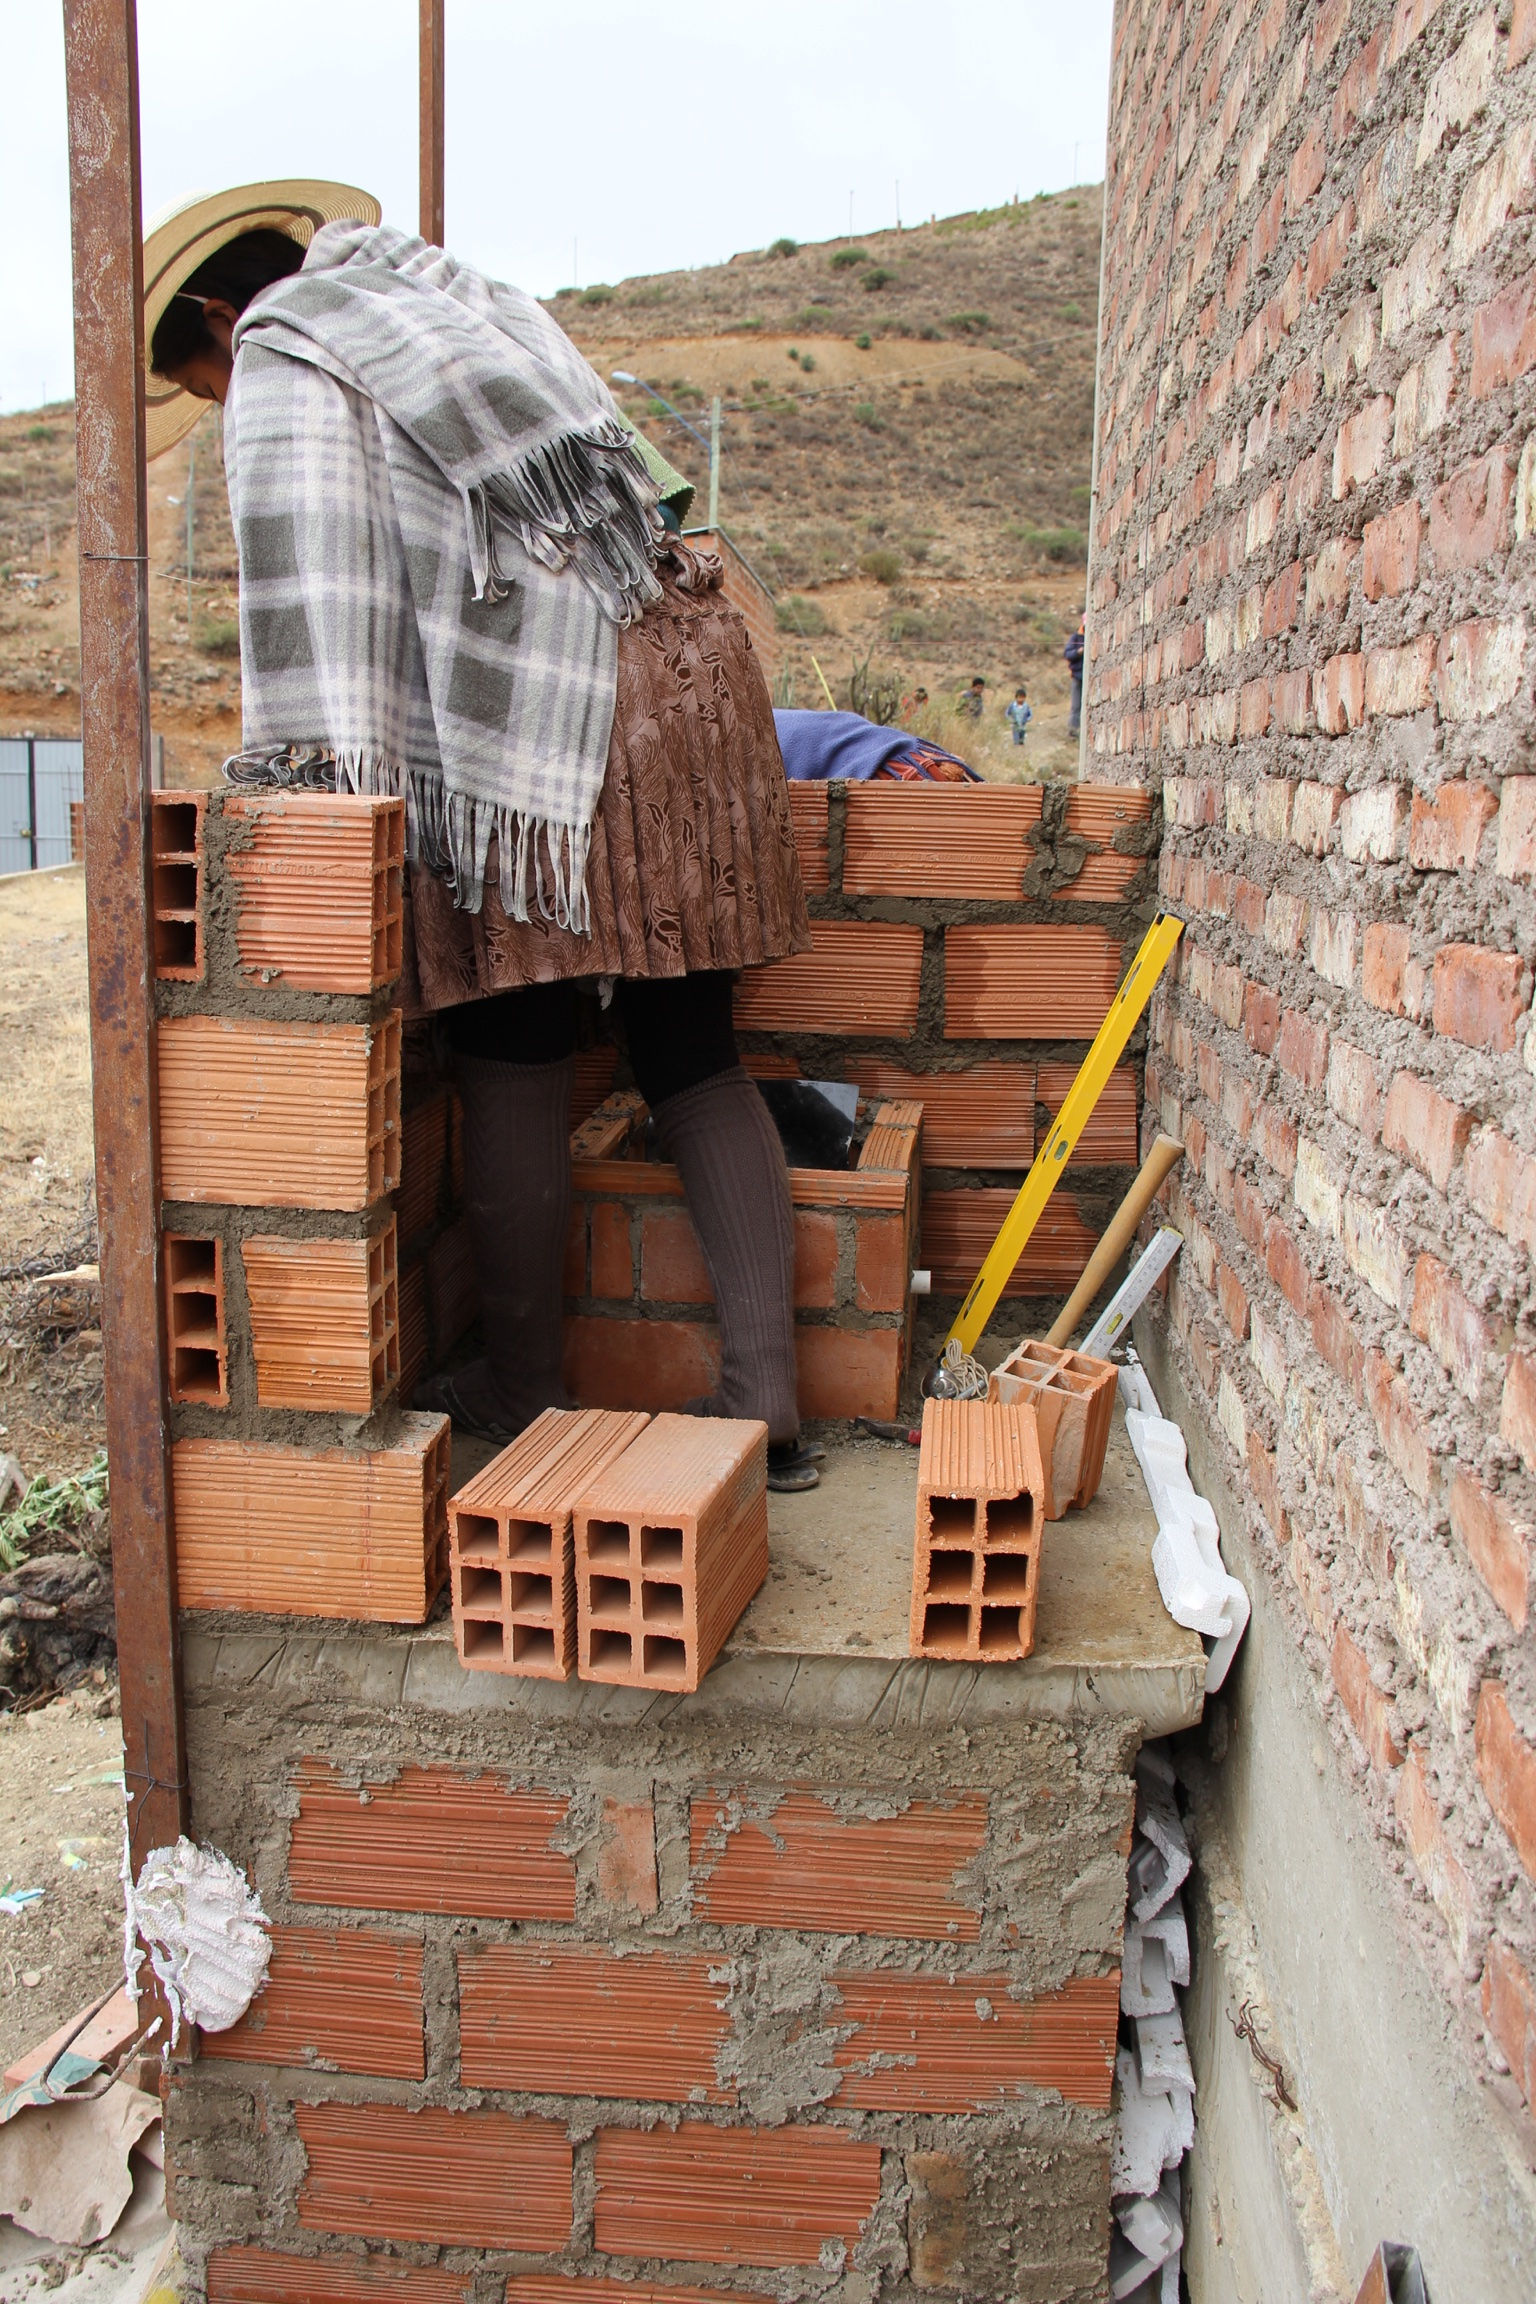 25 New Toilet MAKERs Trained in Bolivia – Global Sustainable Aid Project